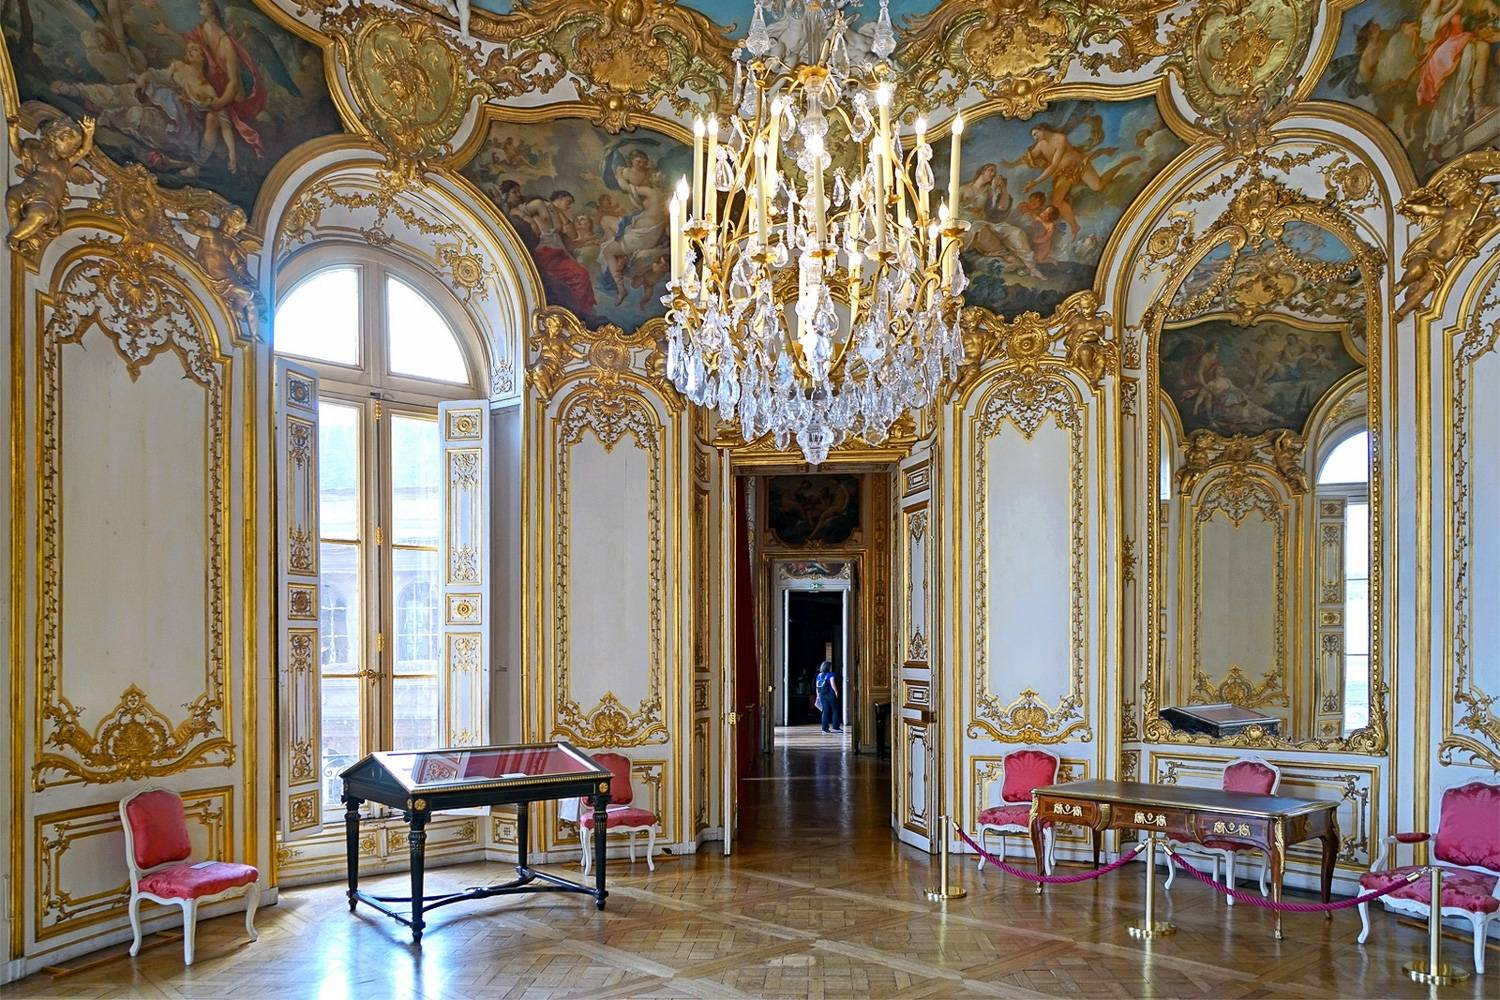 Image of suite in the Hôtel de Soubise.